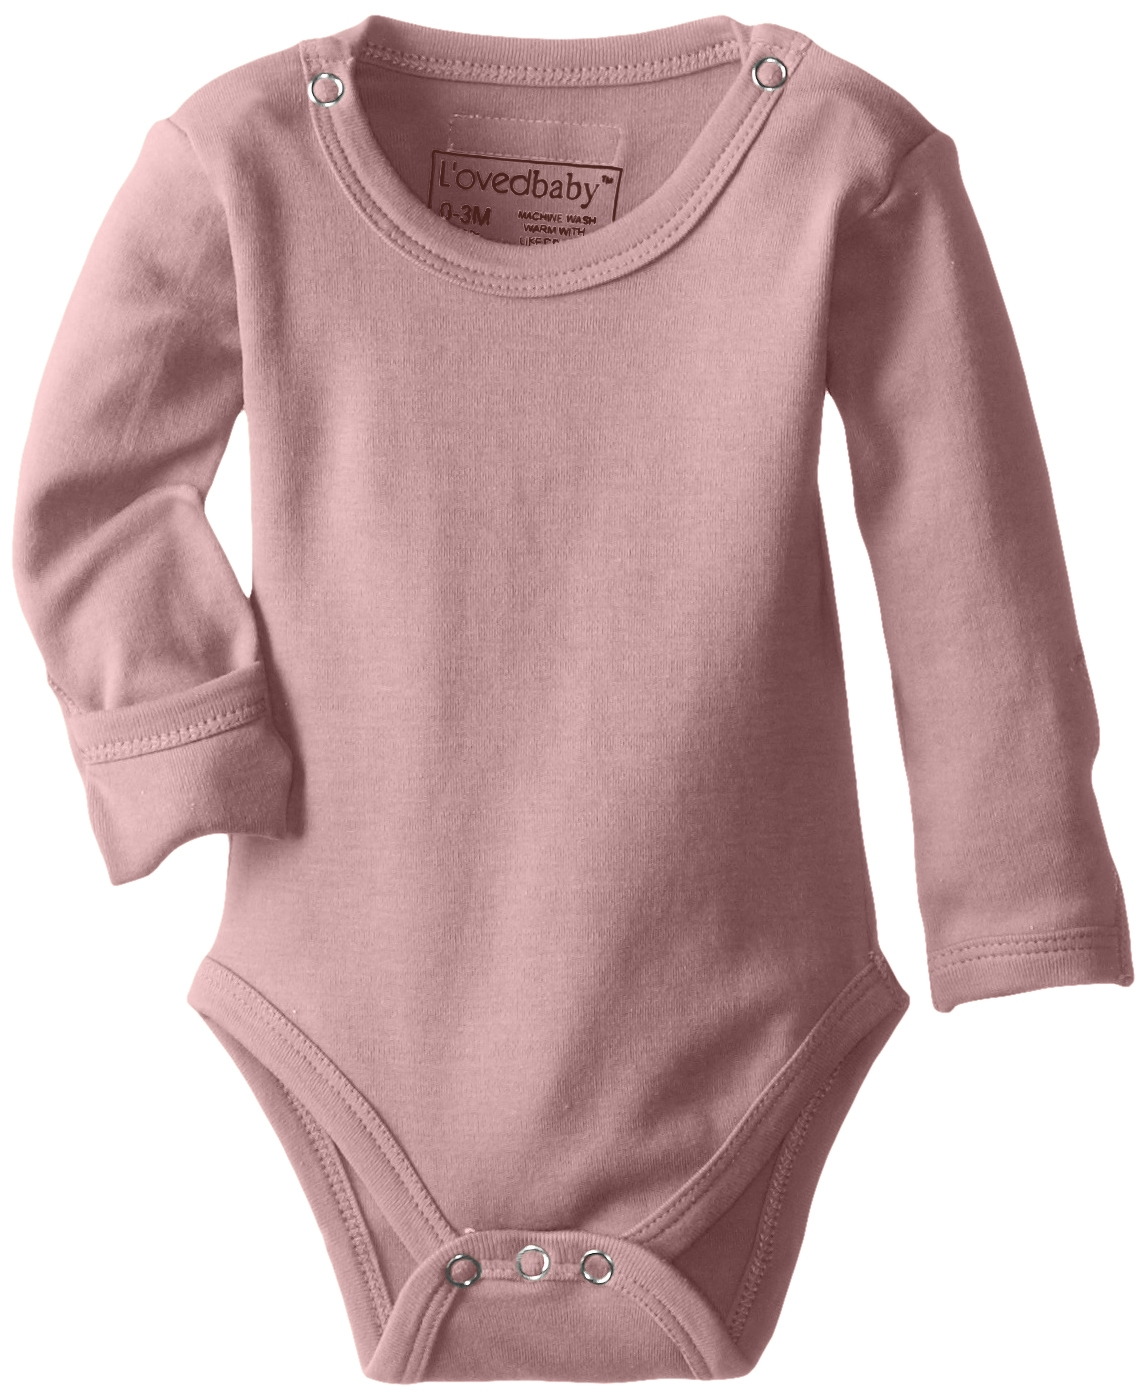 L'Ovedbaby Organic Gloved-Sleeve Bodysuit Mauve 0-3 Months 4